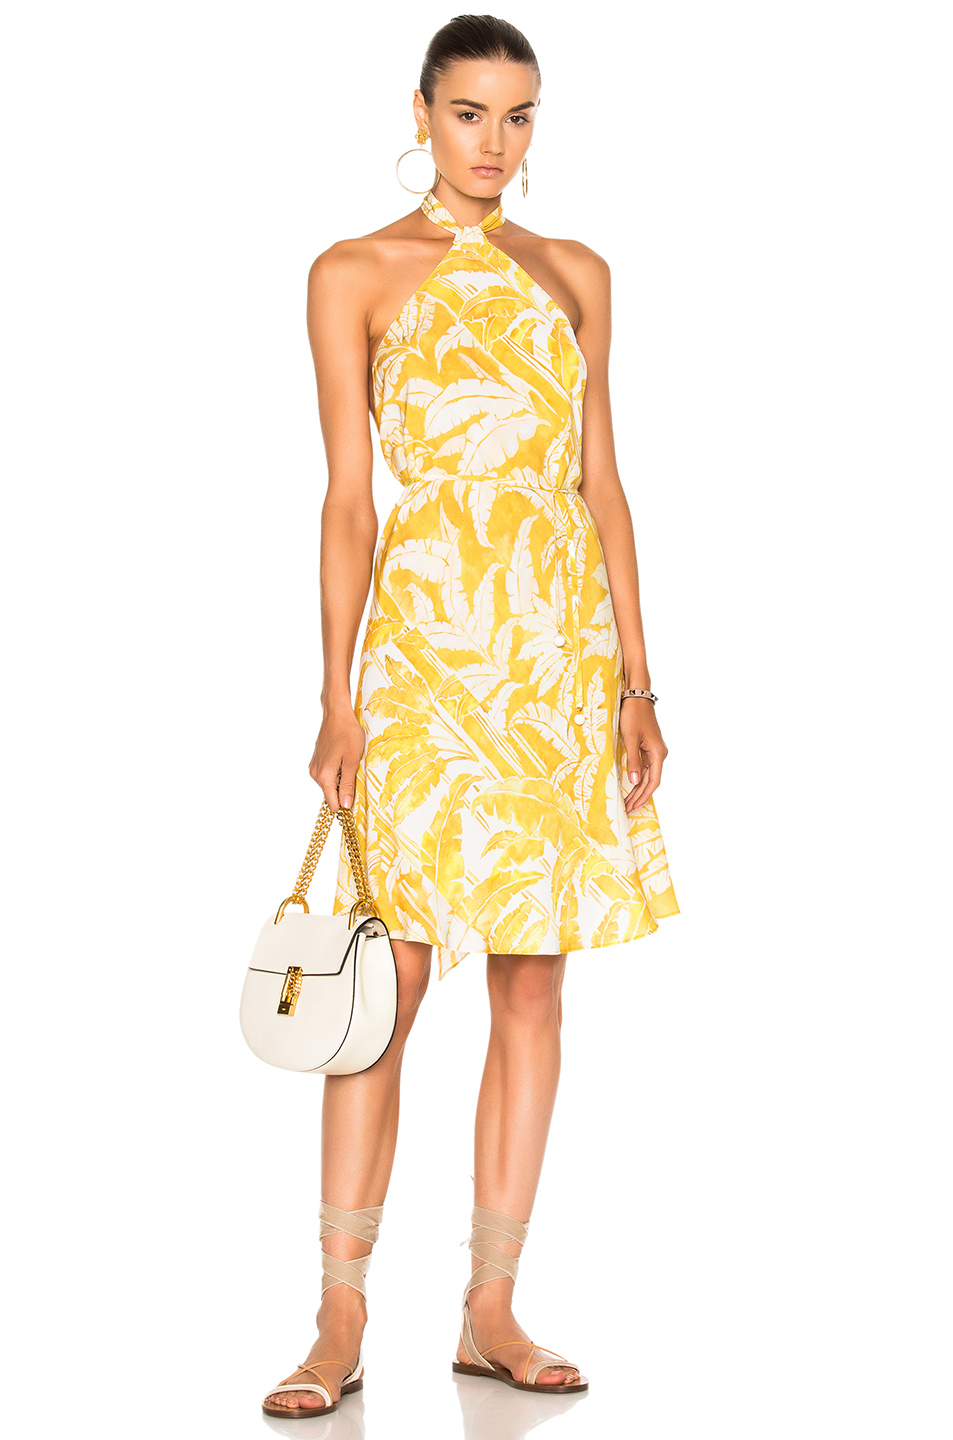 ADRIANA DEGREAS for FWRD Flower Halter Dress in Abstract,Yellow